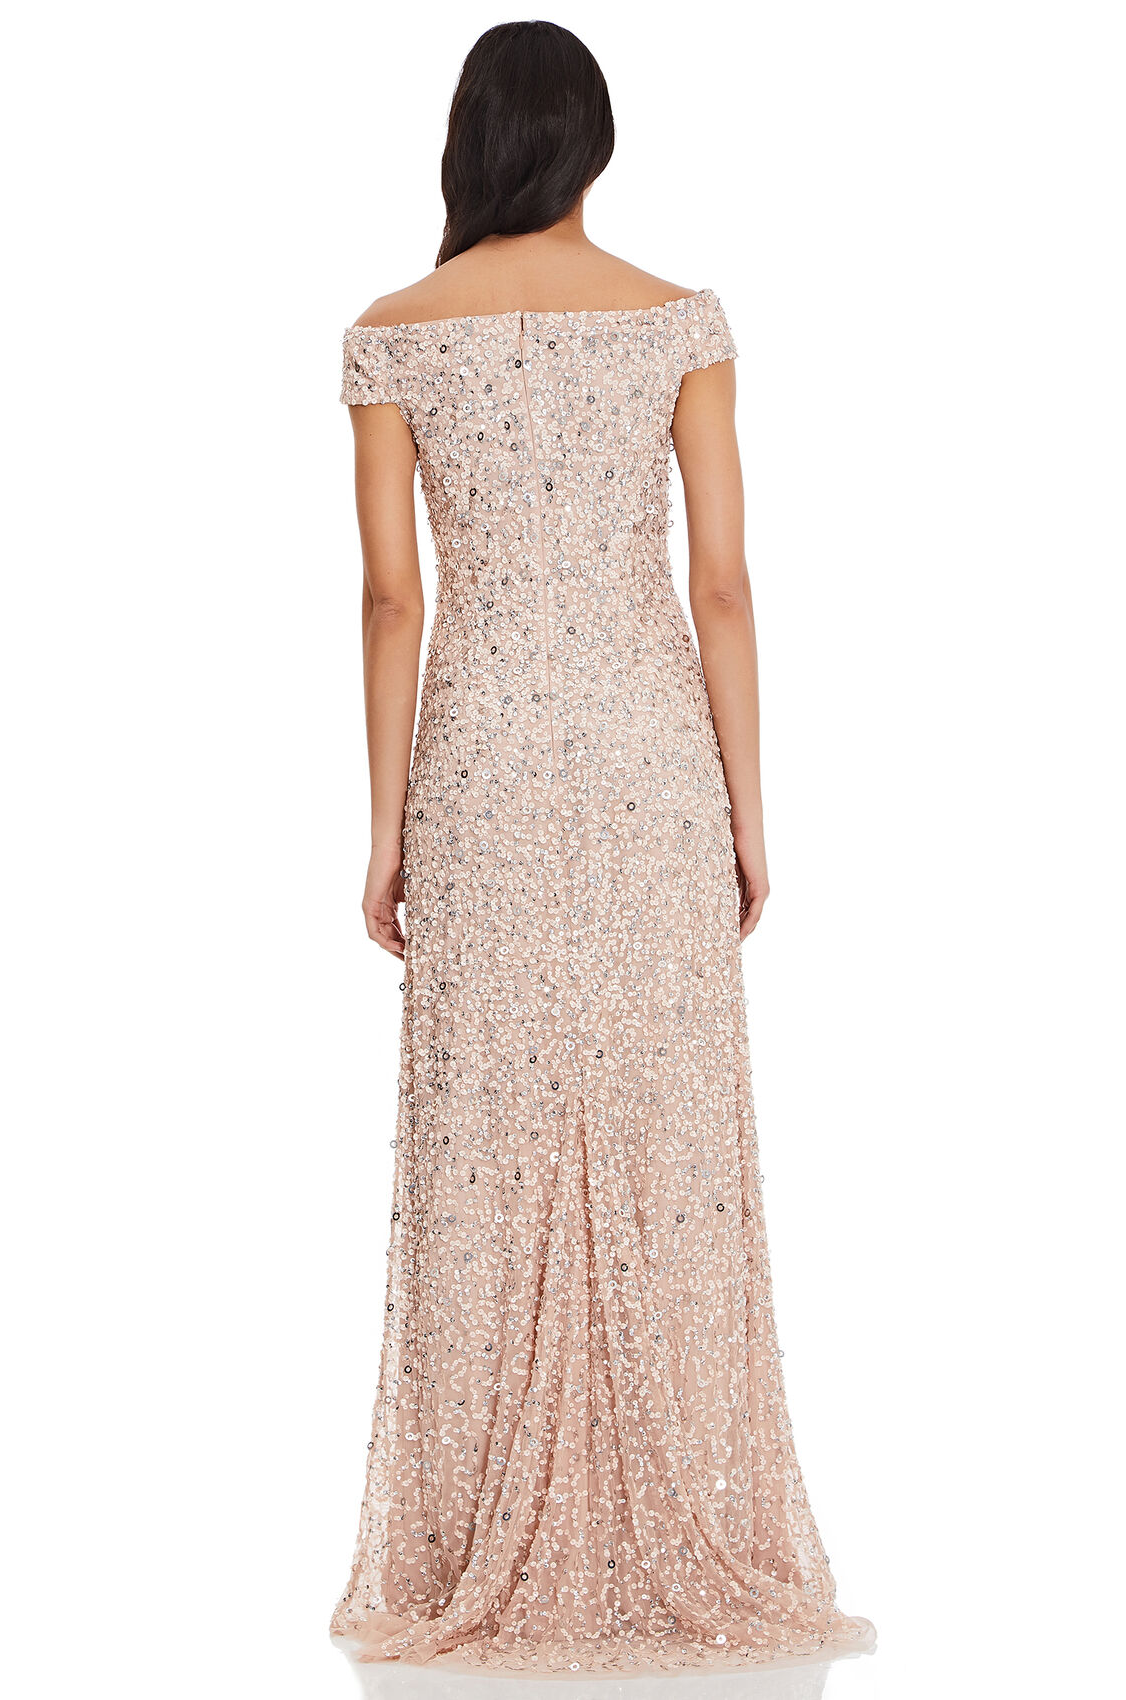 Lillian Off the Shoulder Sequin Beaded Gown By Adrianna Papell - Blush